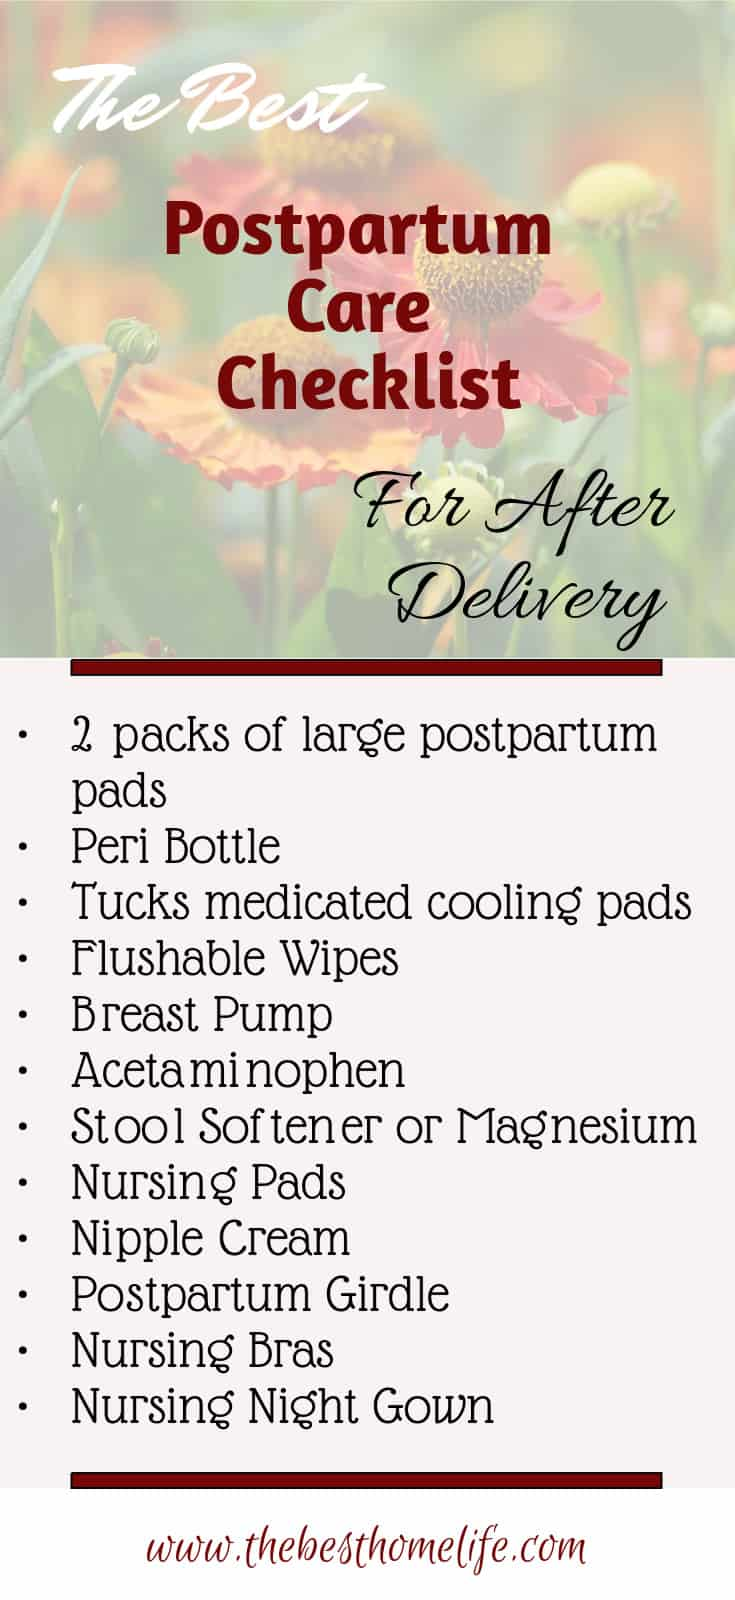 The Best Postpartum Checklist for After Delivery: Be prepared for your postpartum period after delivery. Get the list you are needing all in one spot. pregnancy | postpartum | pregnant | mommy care | delivery | labor | momlife |